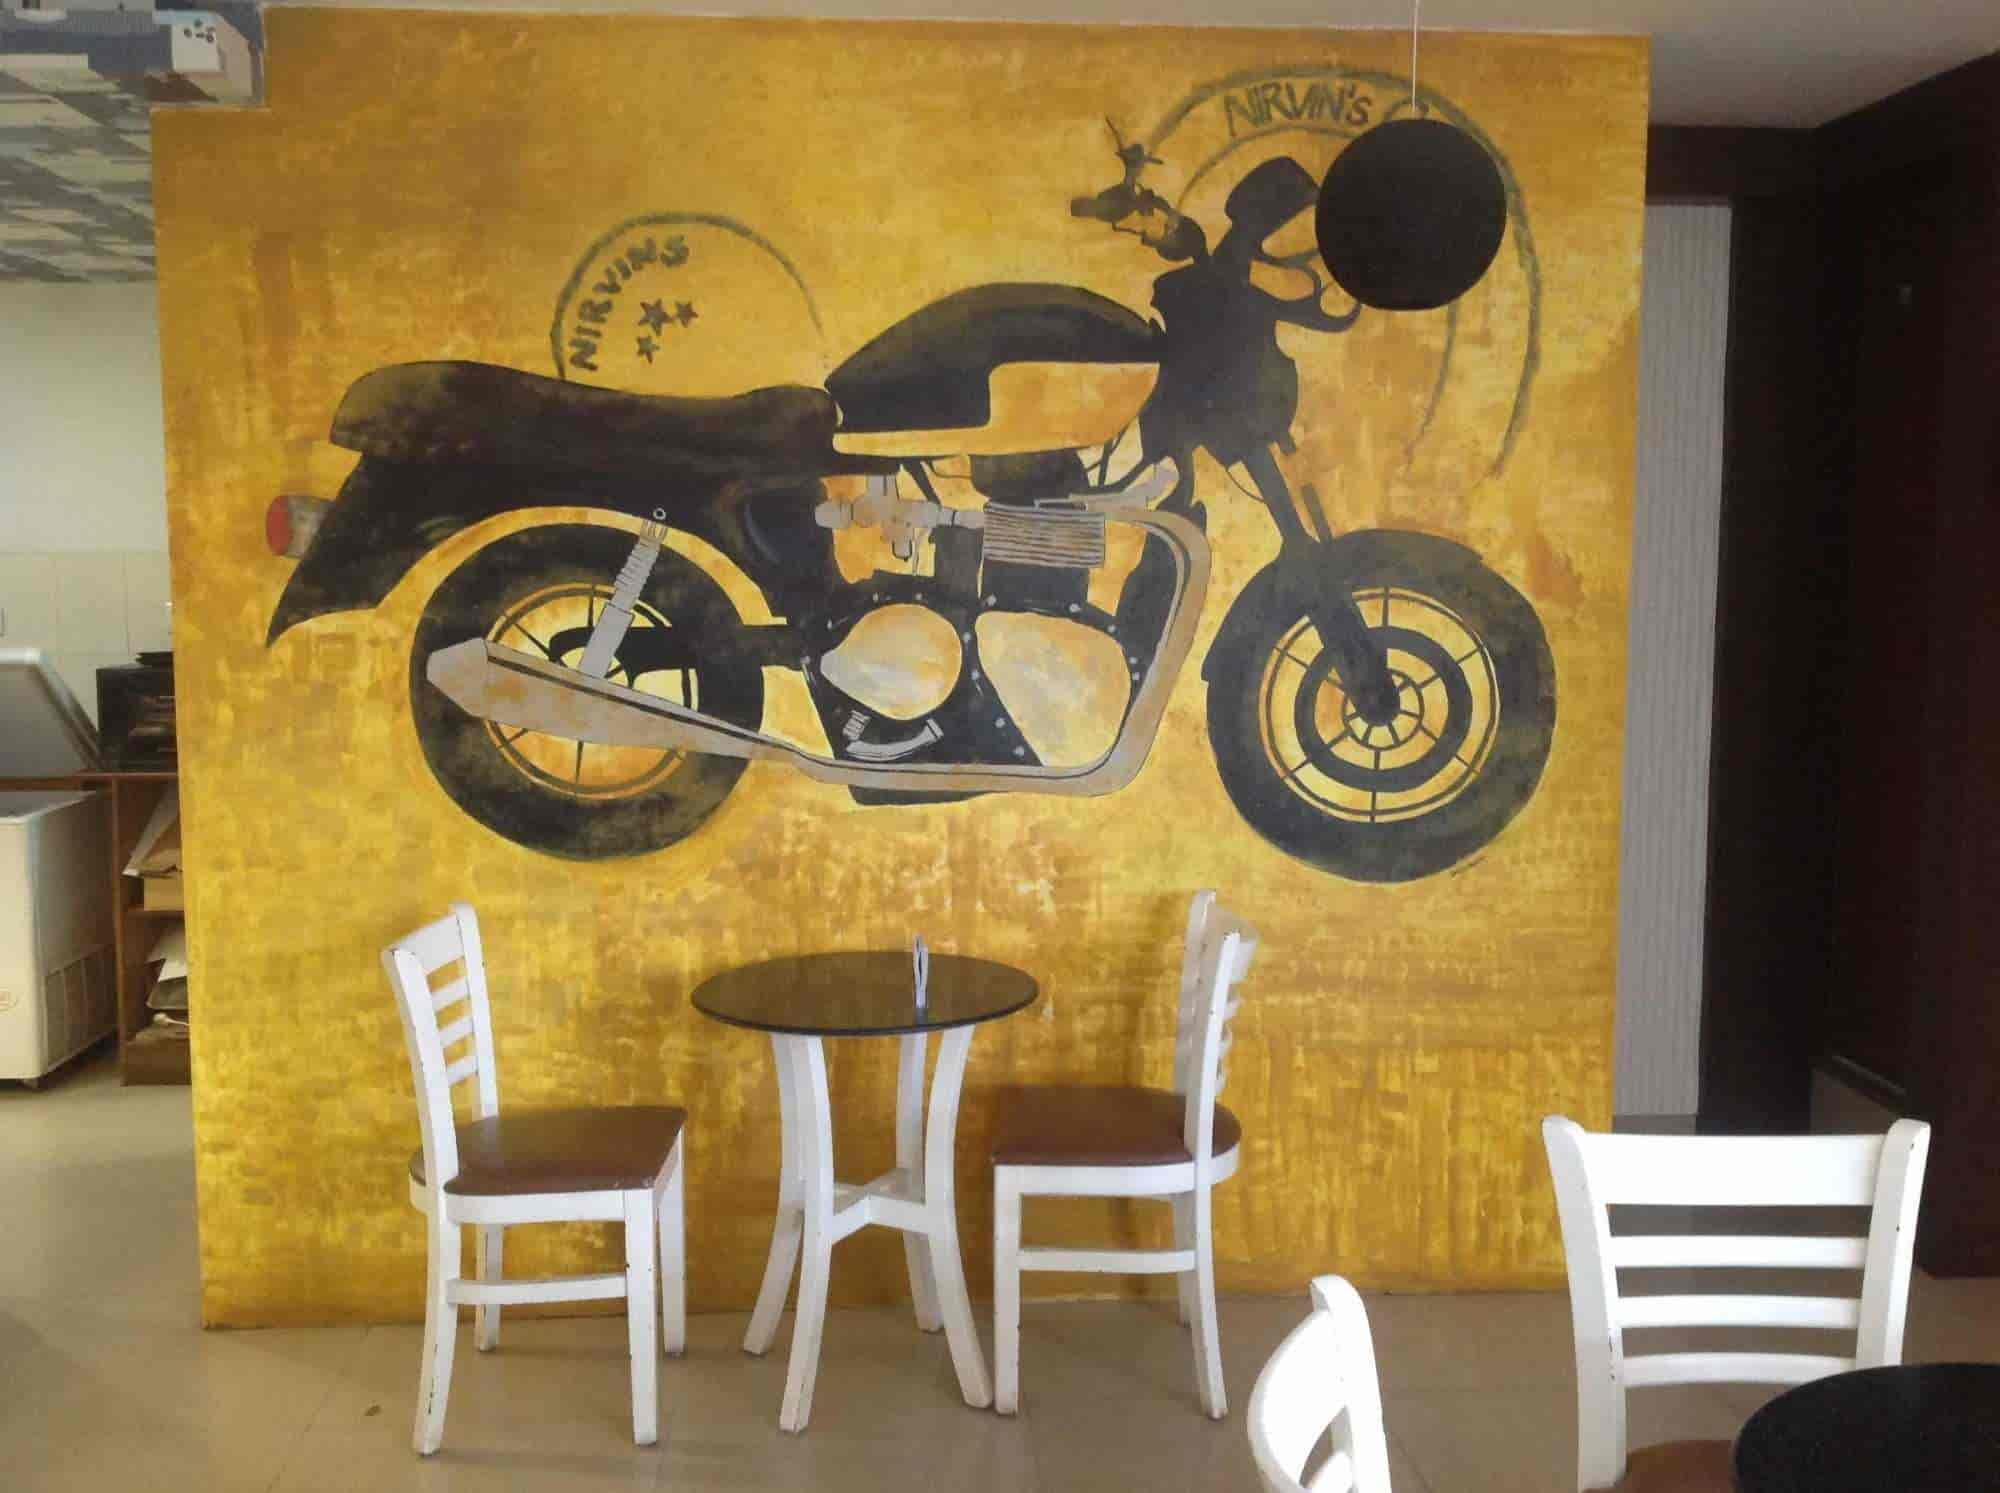 Nirvins Cafe Photos, , Davangere- Pictures & Images Gallery - Justdial